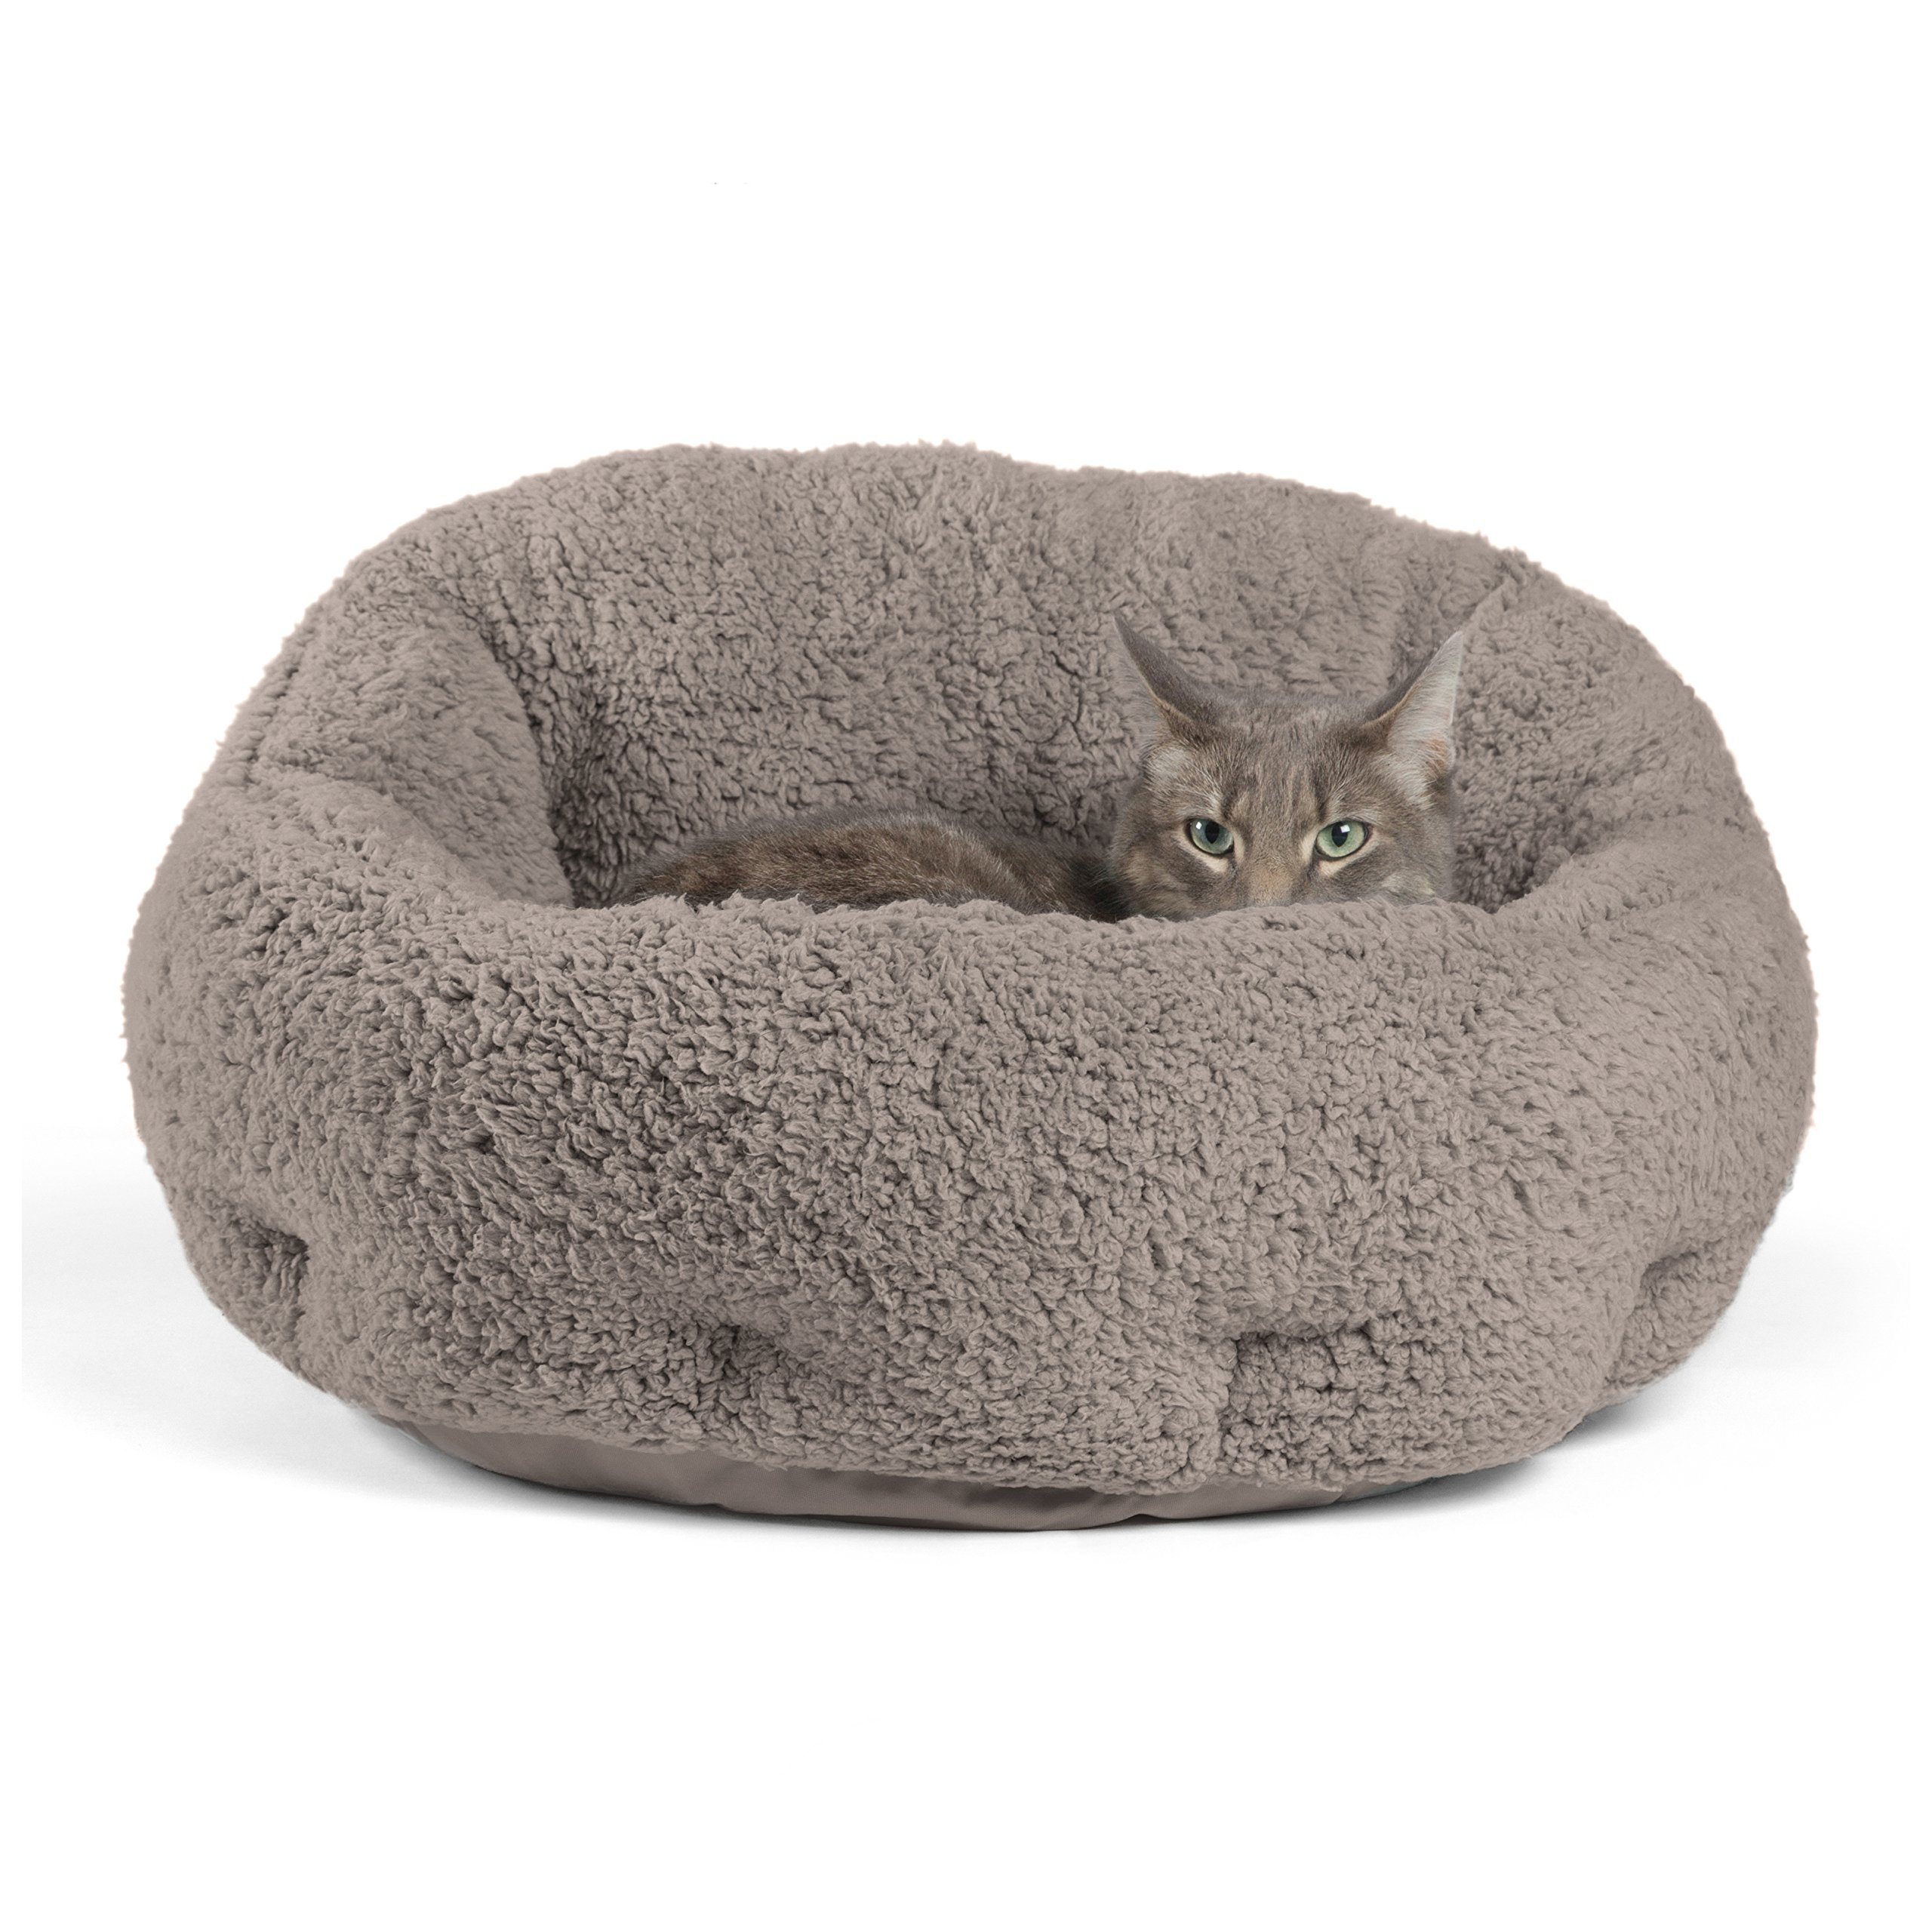 Best Friends by Sheri OrthoComfort Deep Dish Cuddler (19x17x12'') - Self-Warming  Cat and Dog Bed, Gray by Best Friends by Sheri